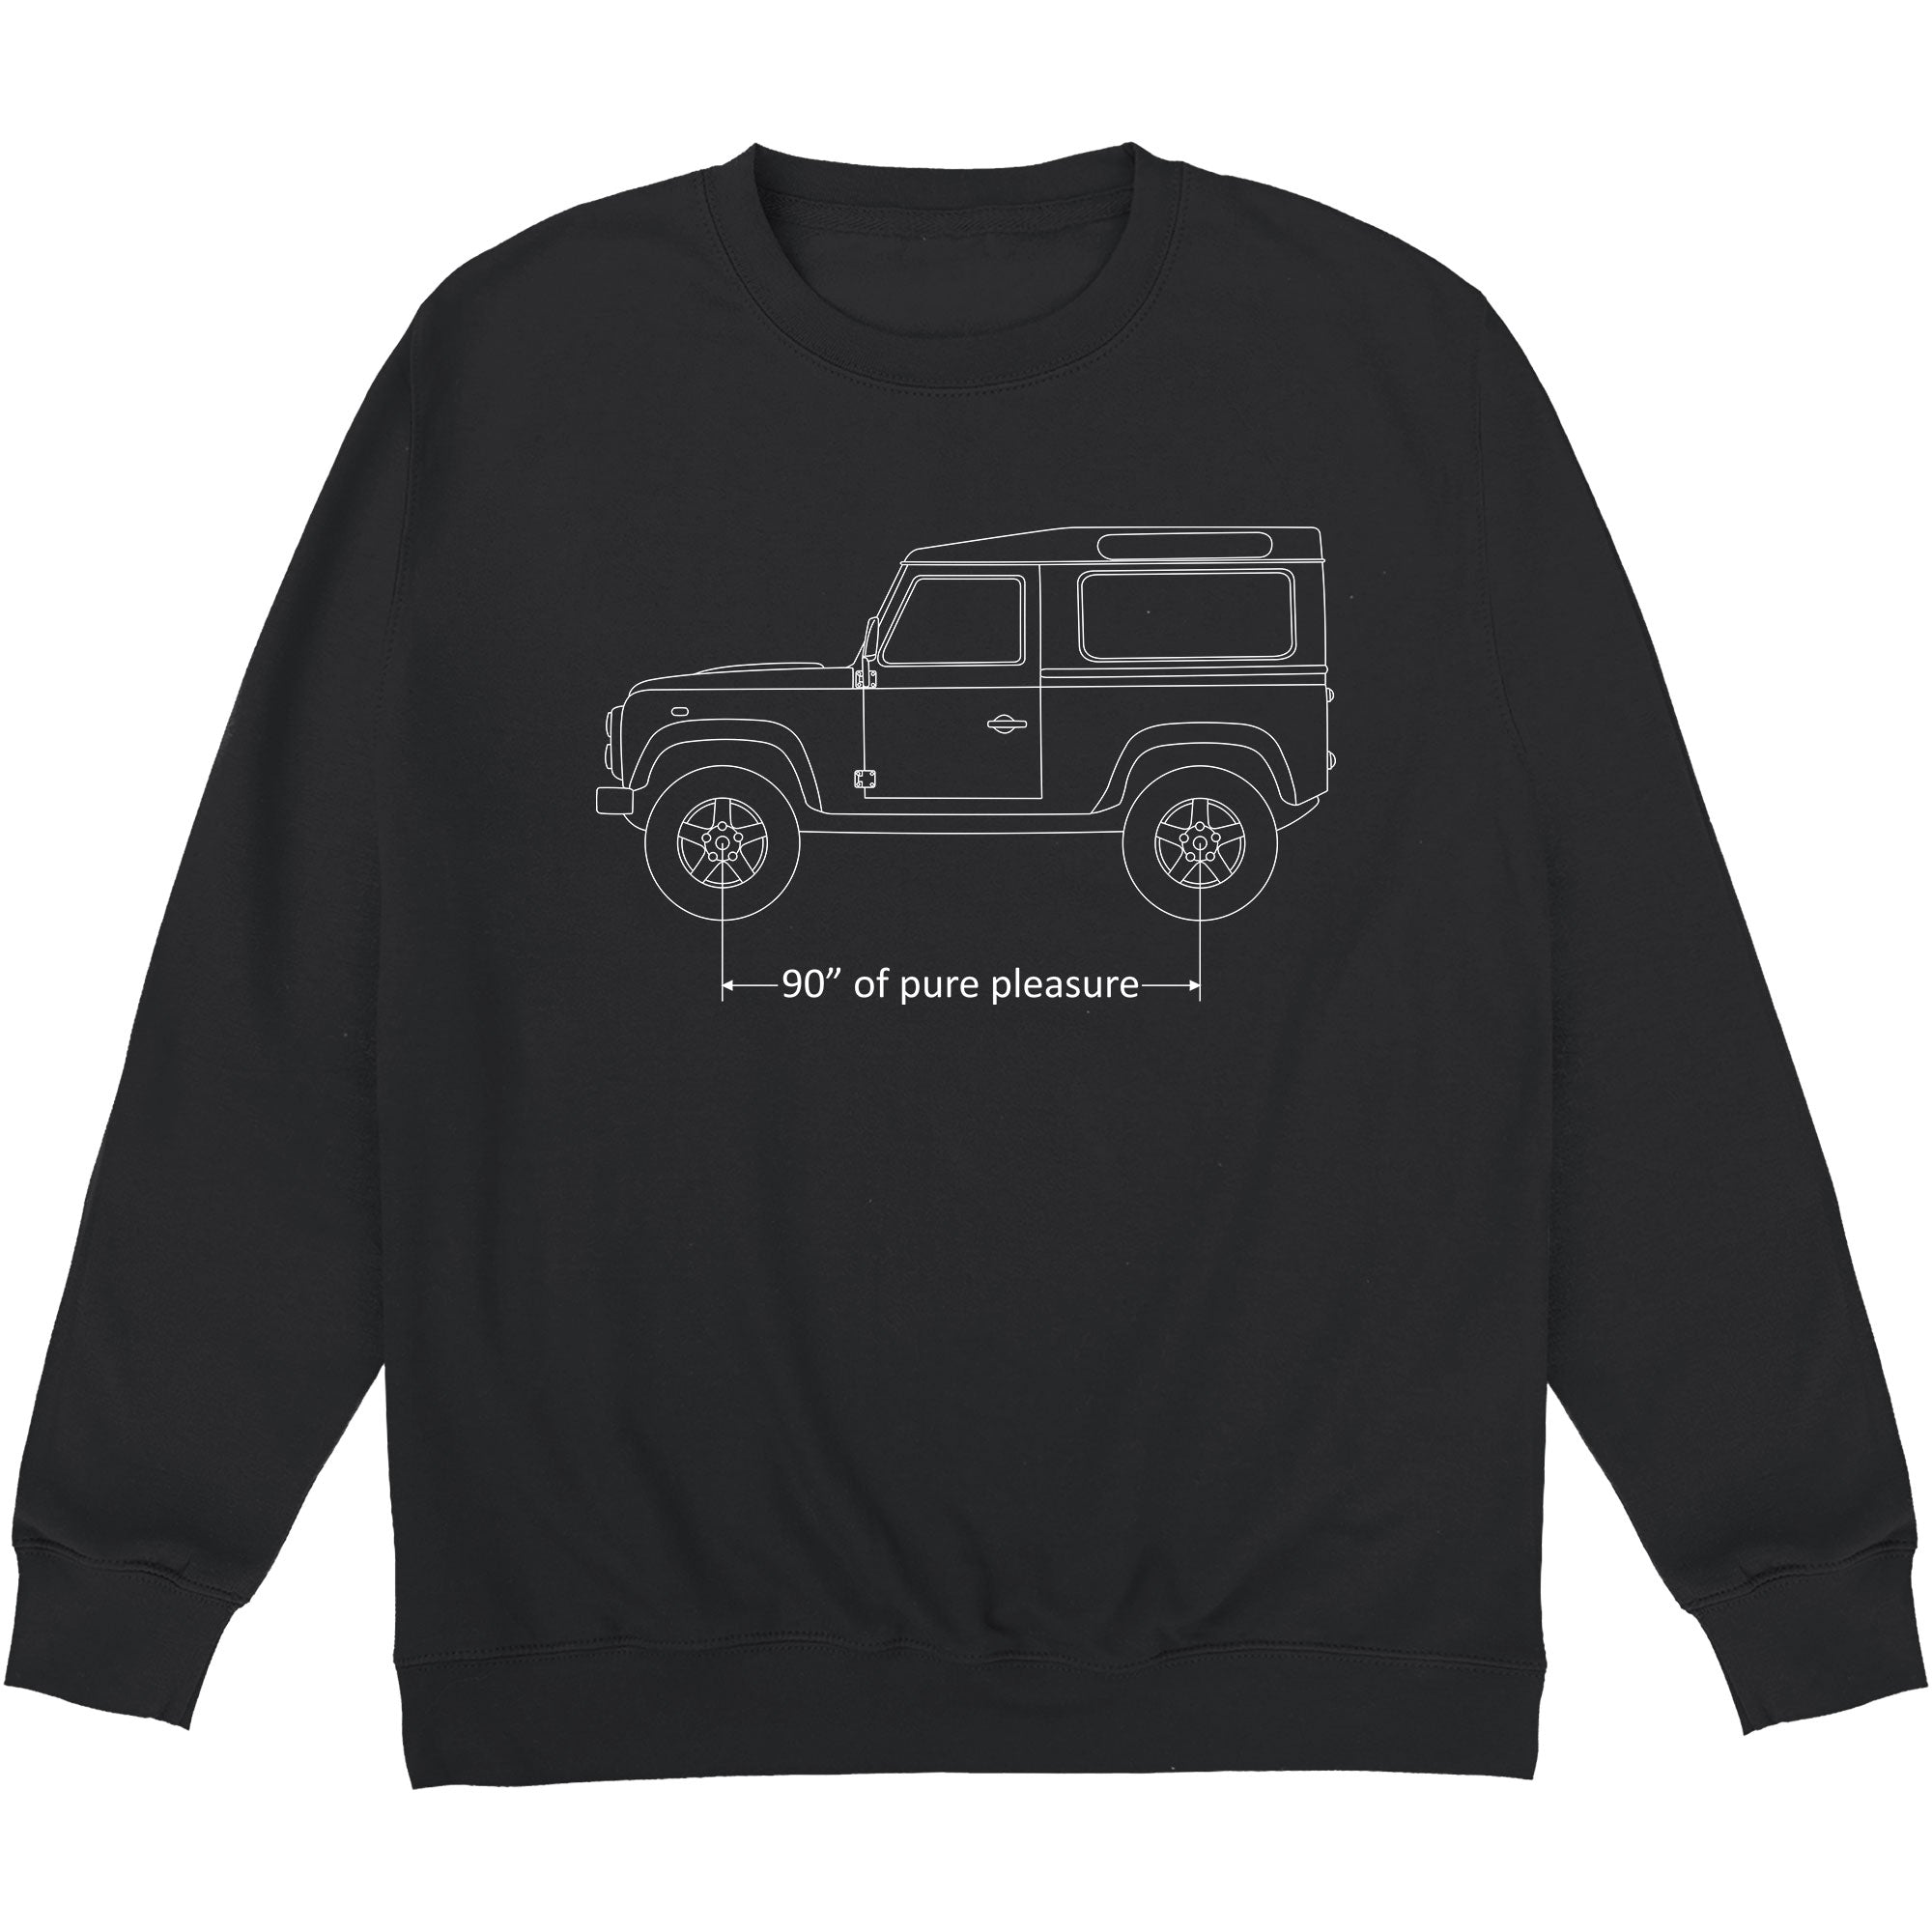 CHEAP 90 Inches of Pure Pleasure Crewneck Sweatshirt 28109022401 – Clothing Accessories